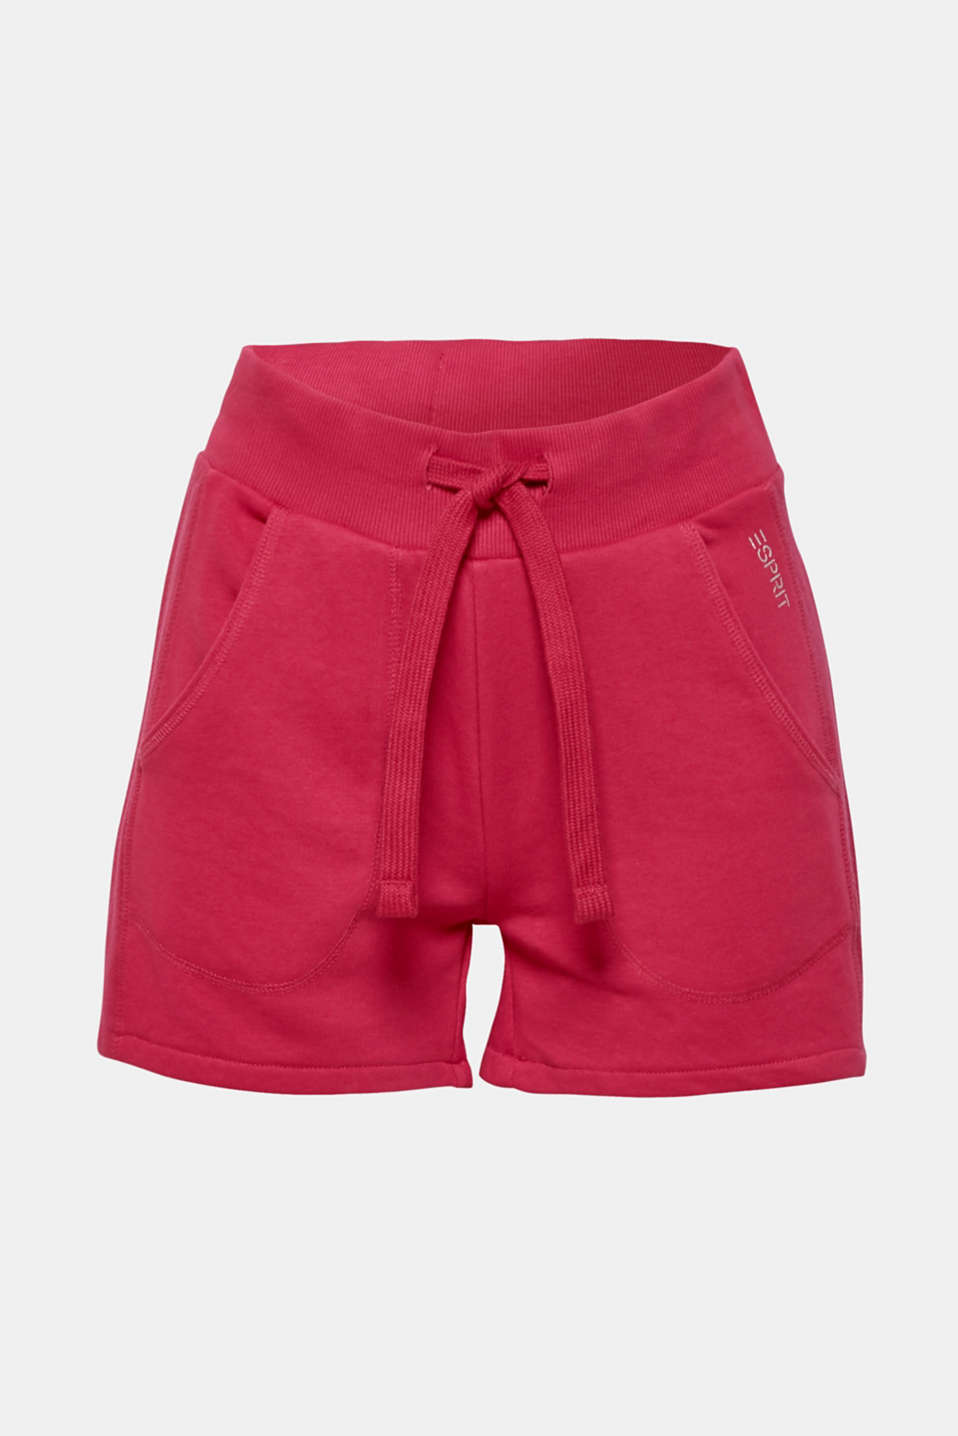 Shorts knitted, CHERRY RED, detail image number 6